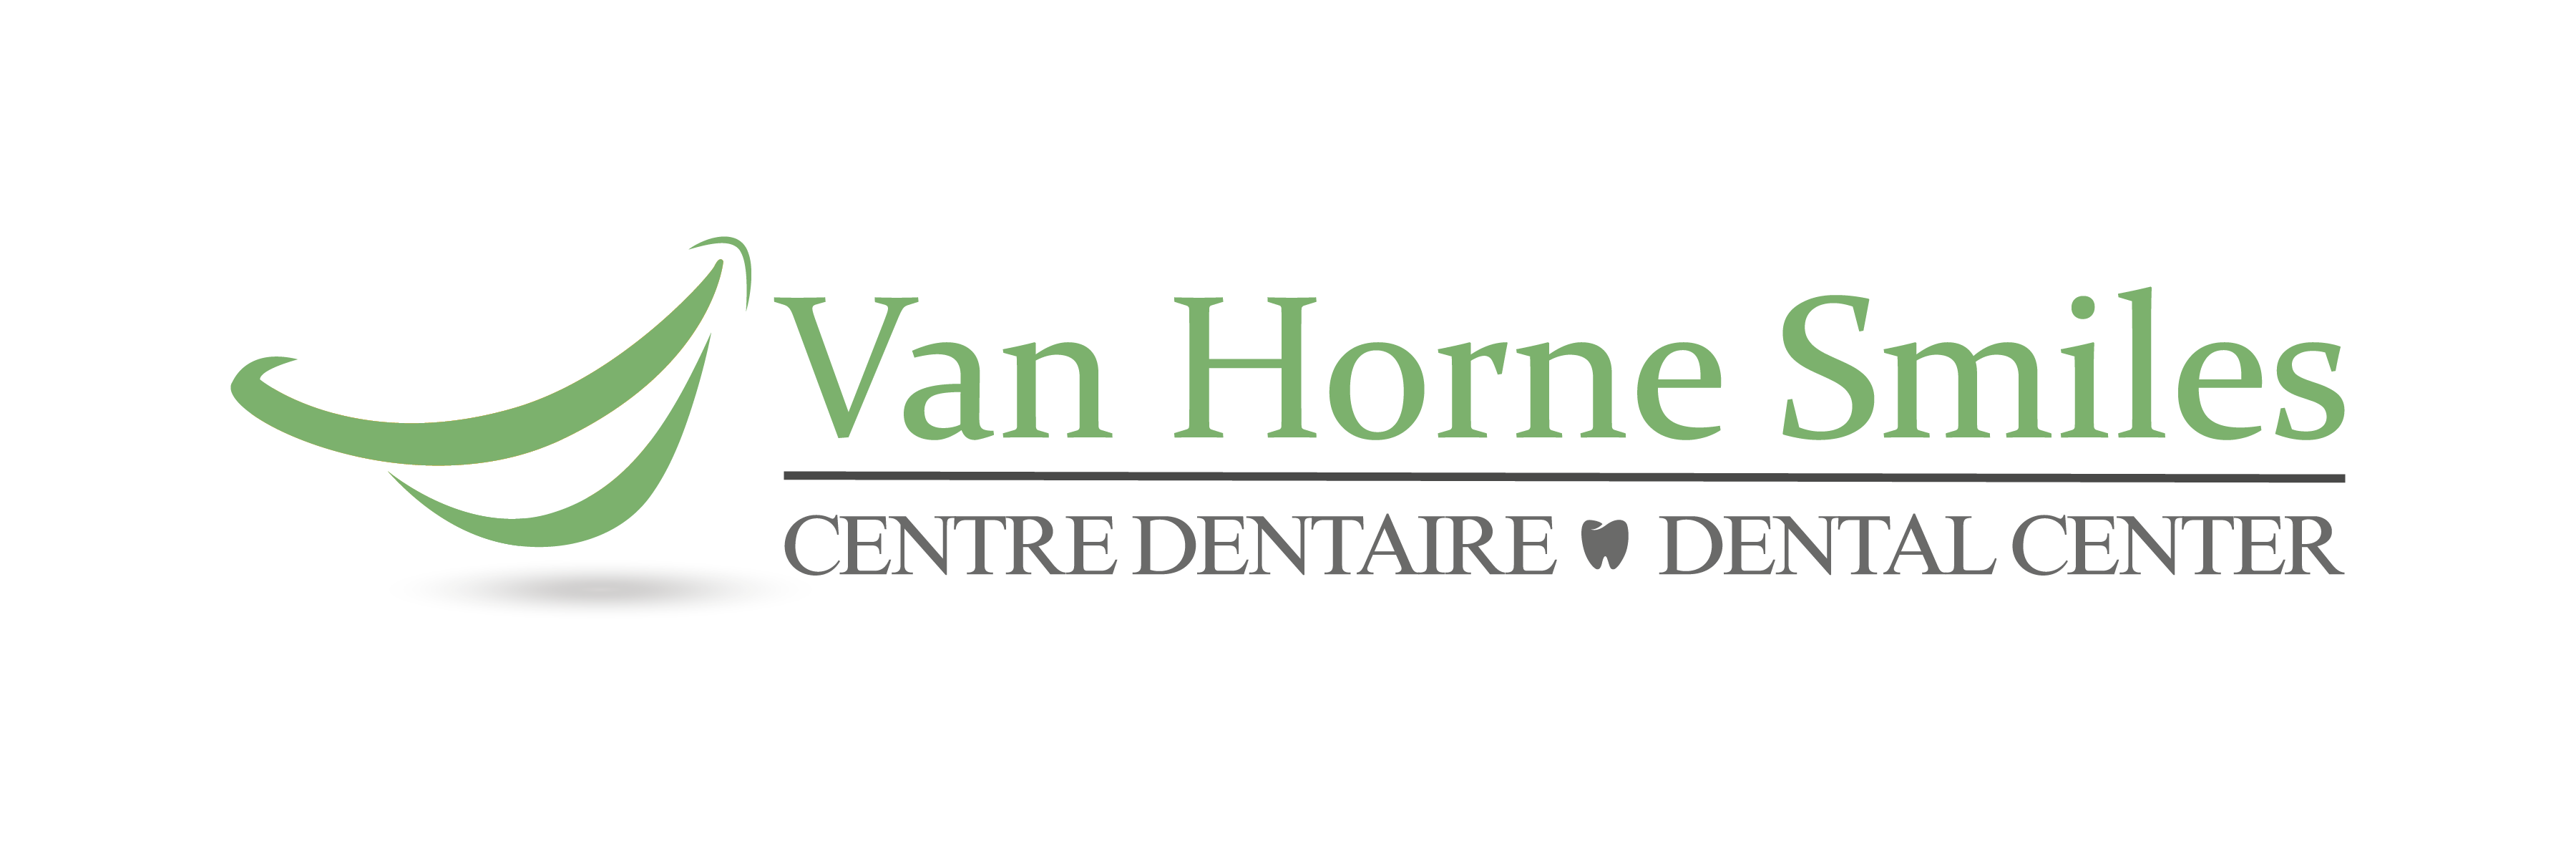 Van Horne Smiles reviews, opinions and consumer feedback